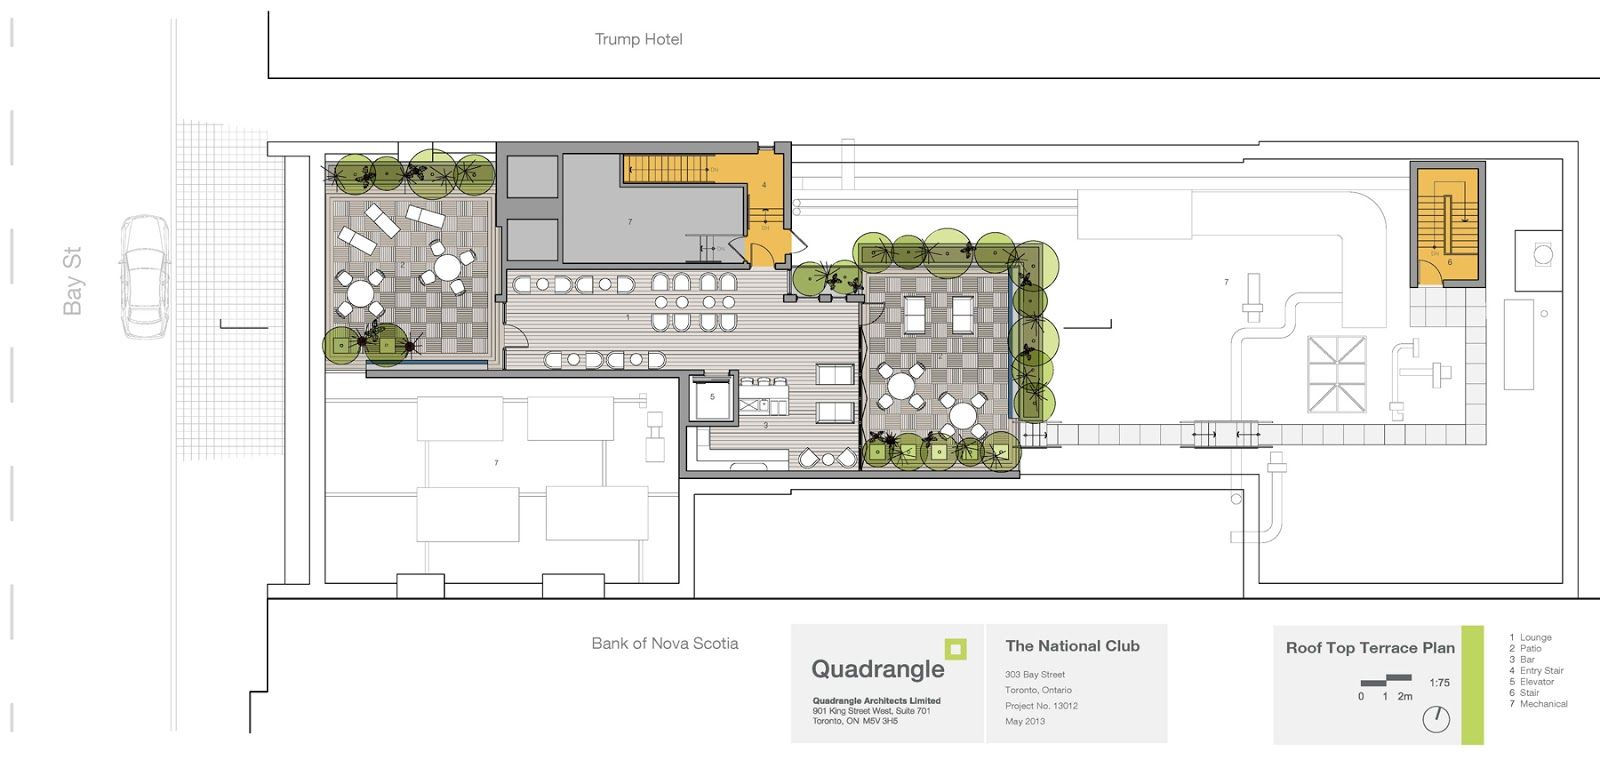 Image Result For Rooftop Plan